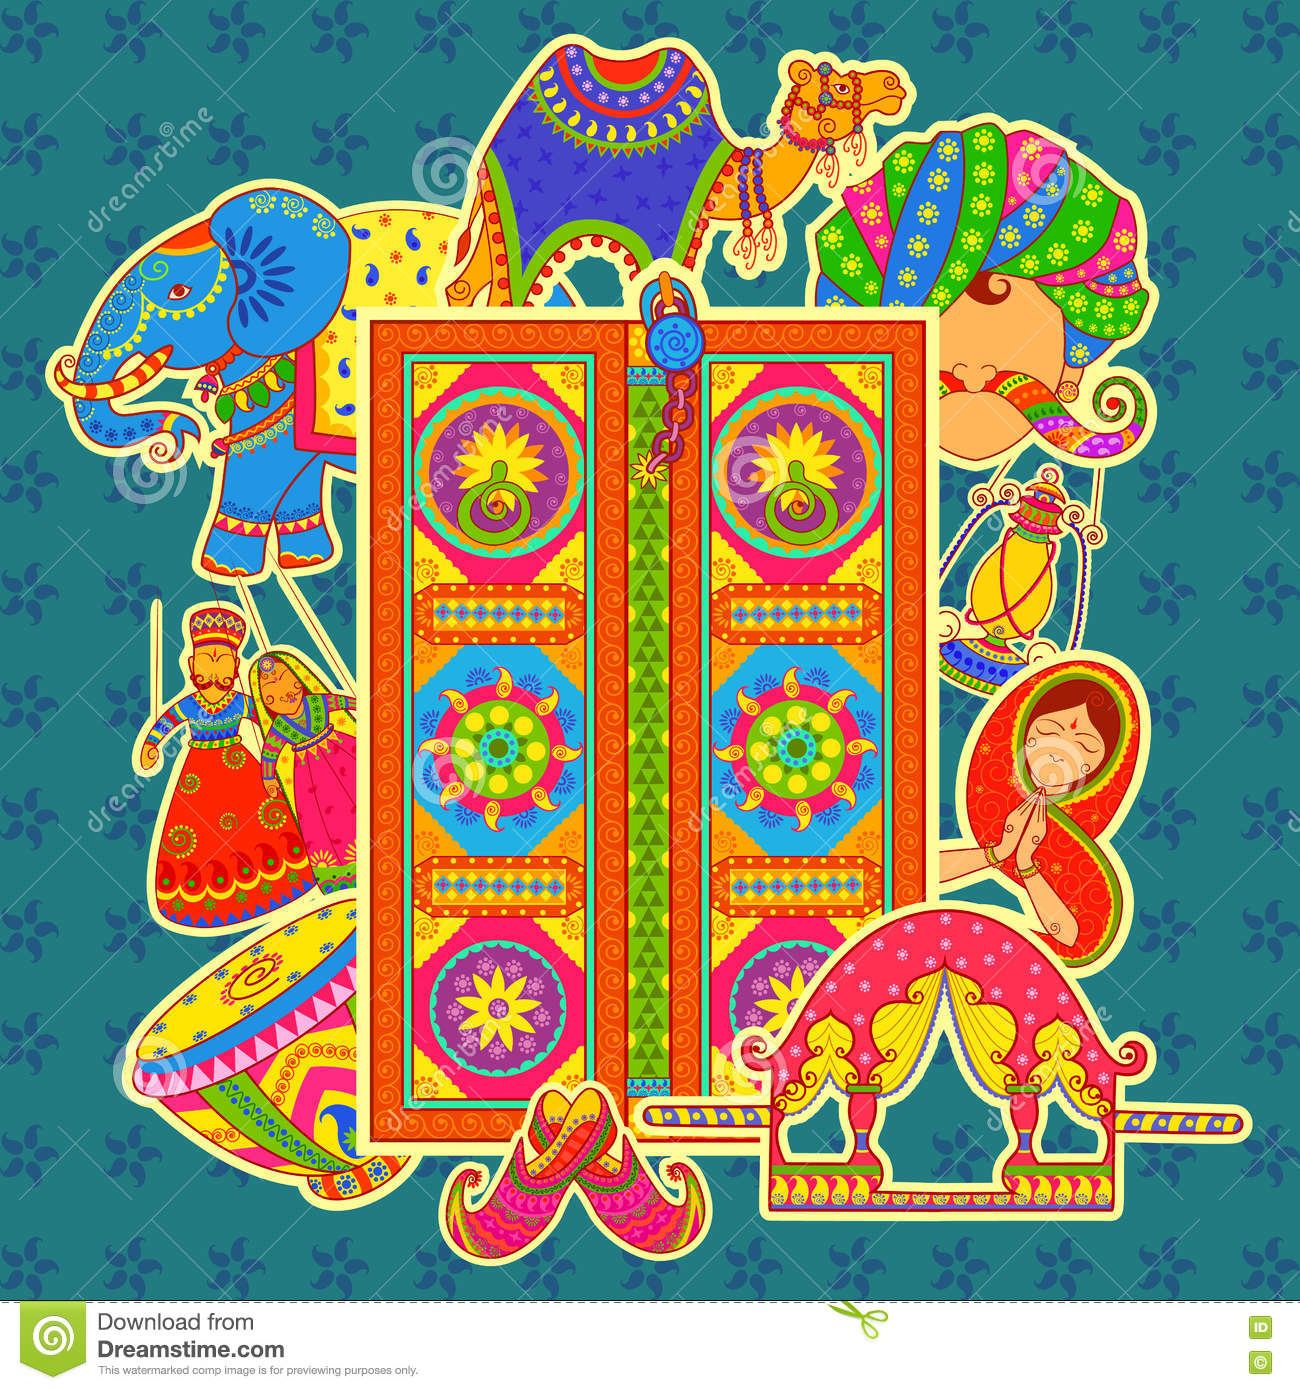 Indian Home Decor Ideas That Reflect Indian Culture: Rajasthan Cartoons, Illustrations & Vector Stock Images